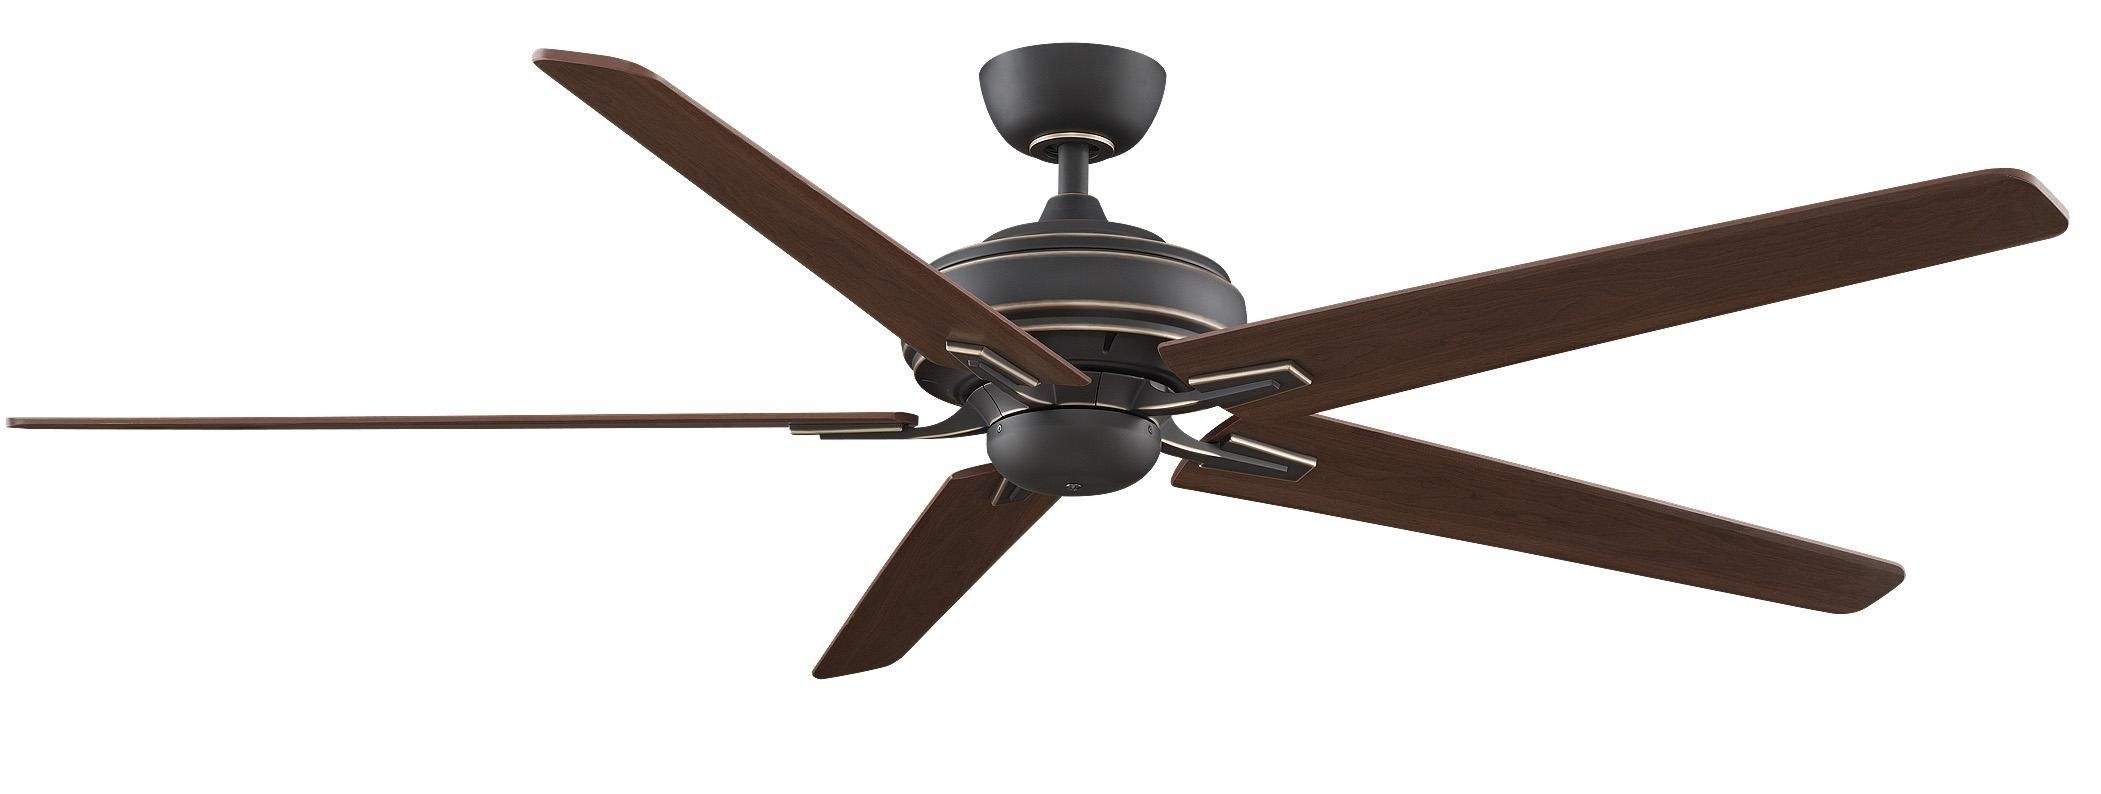 Bronze Ceiling Fans Without Lights | Http://creativechairsandtables Pertaining To Outdoor Ceiling Fans Without Lights (#4 of 15)